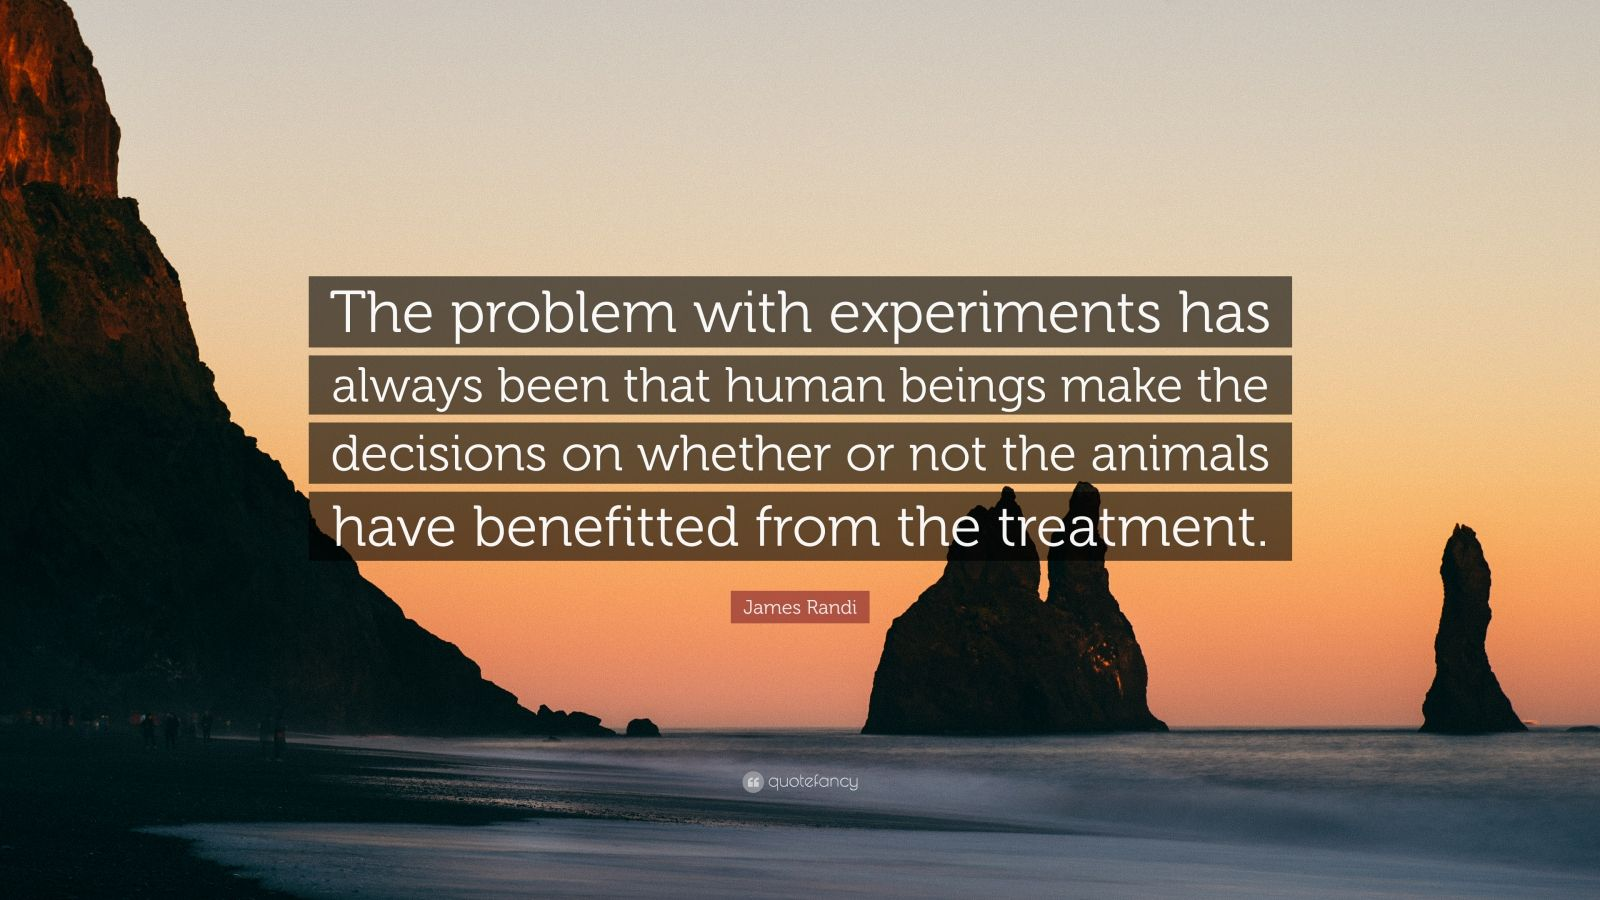 """James Randi Quote: """"The problem with experiments has always been that human beings make the decisions on whether or not the animals have benefitted from the treatment."""""""